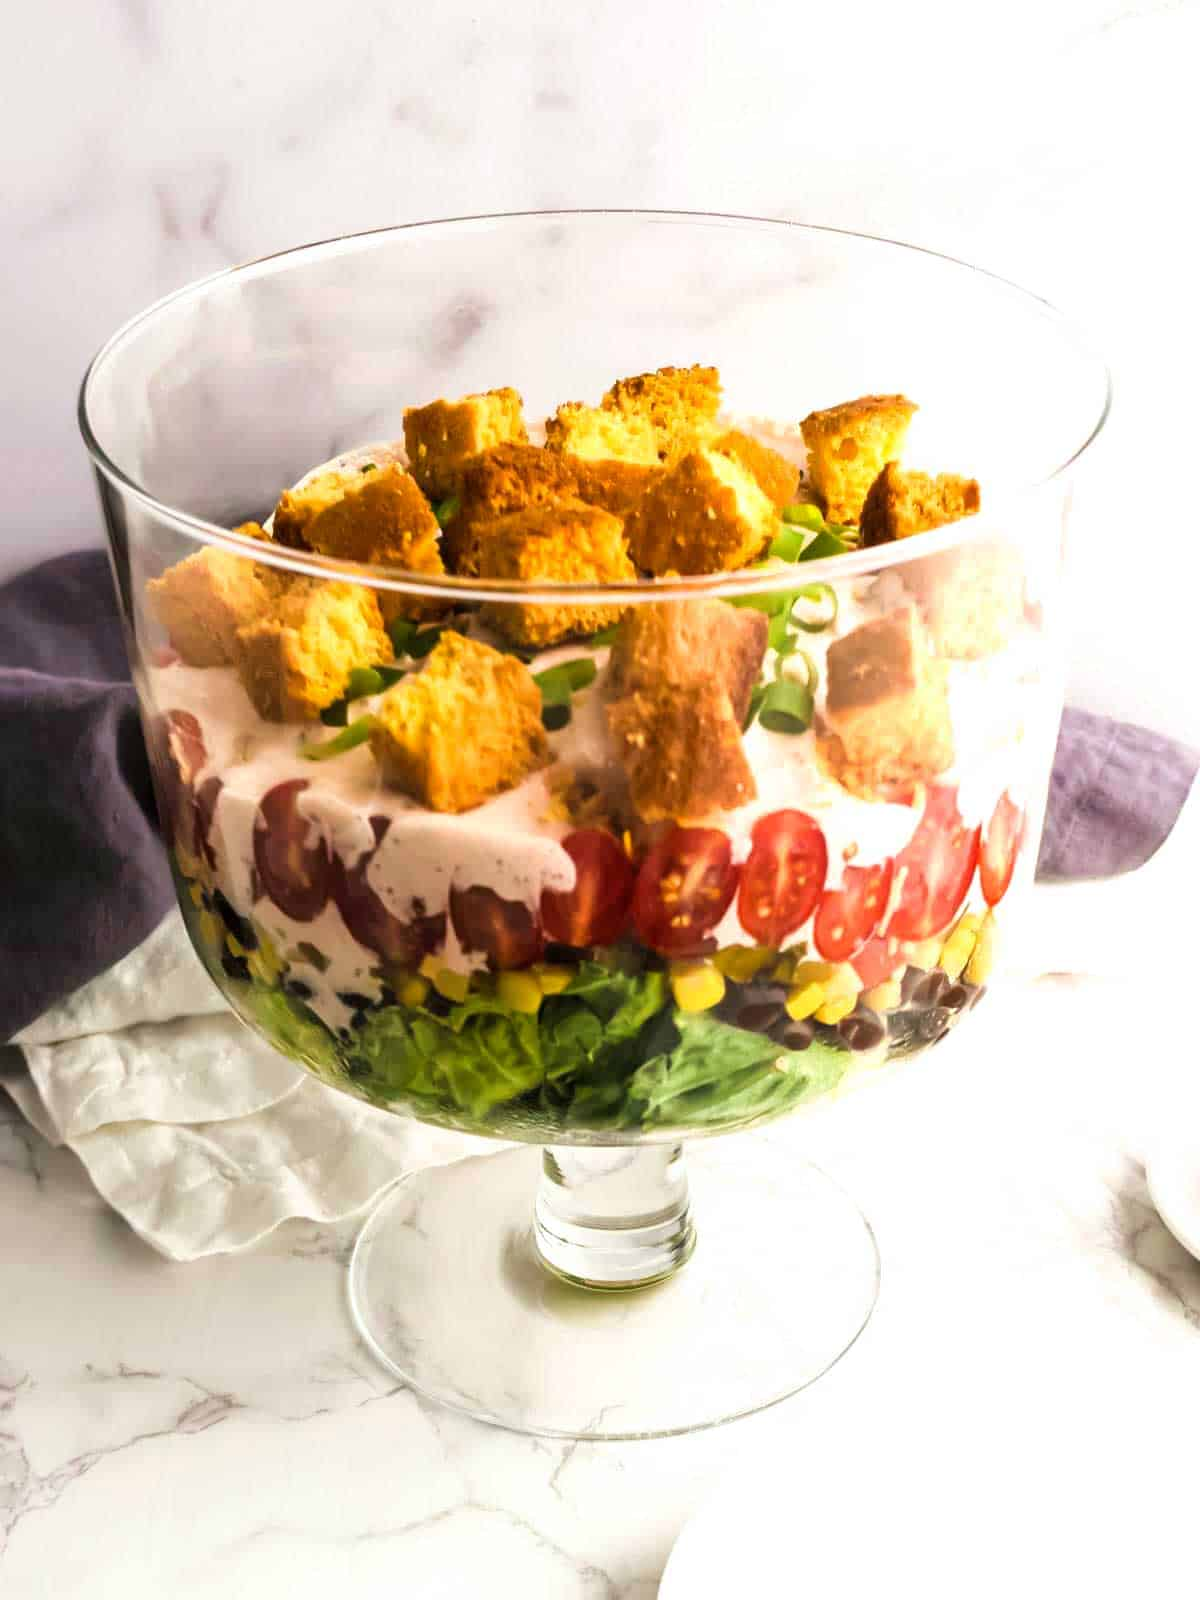 Salad topped with cornbread croutons